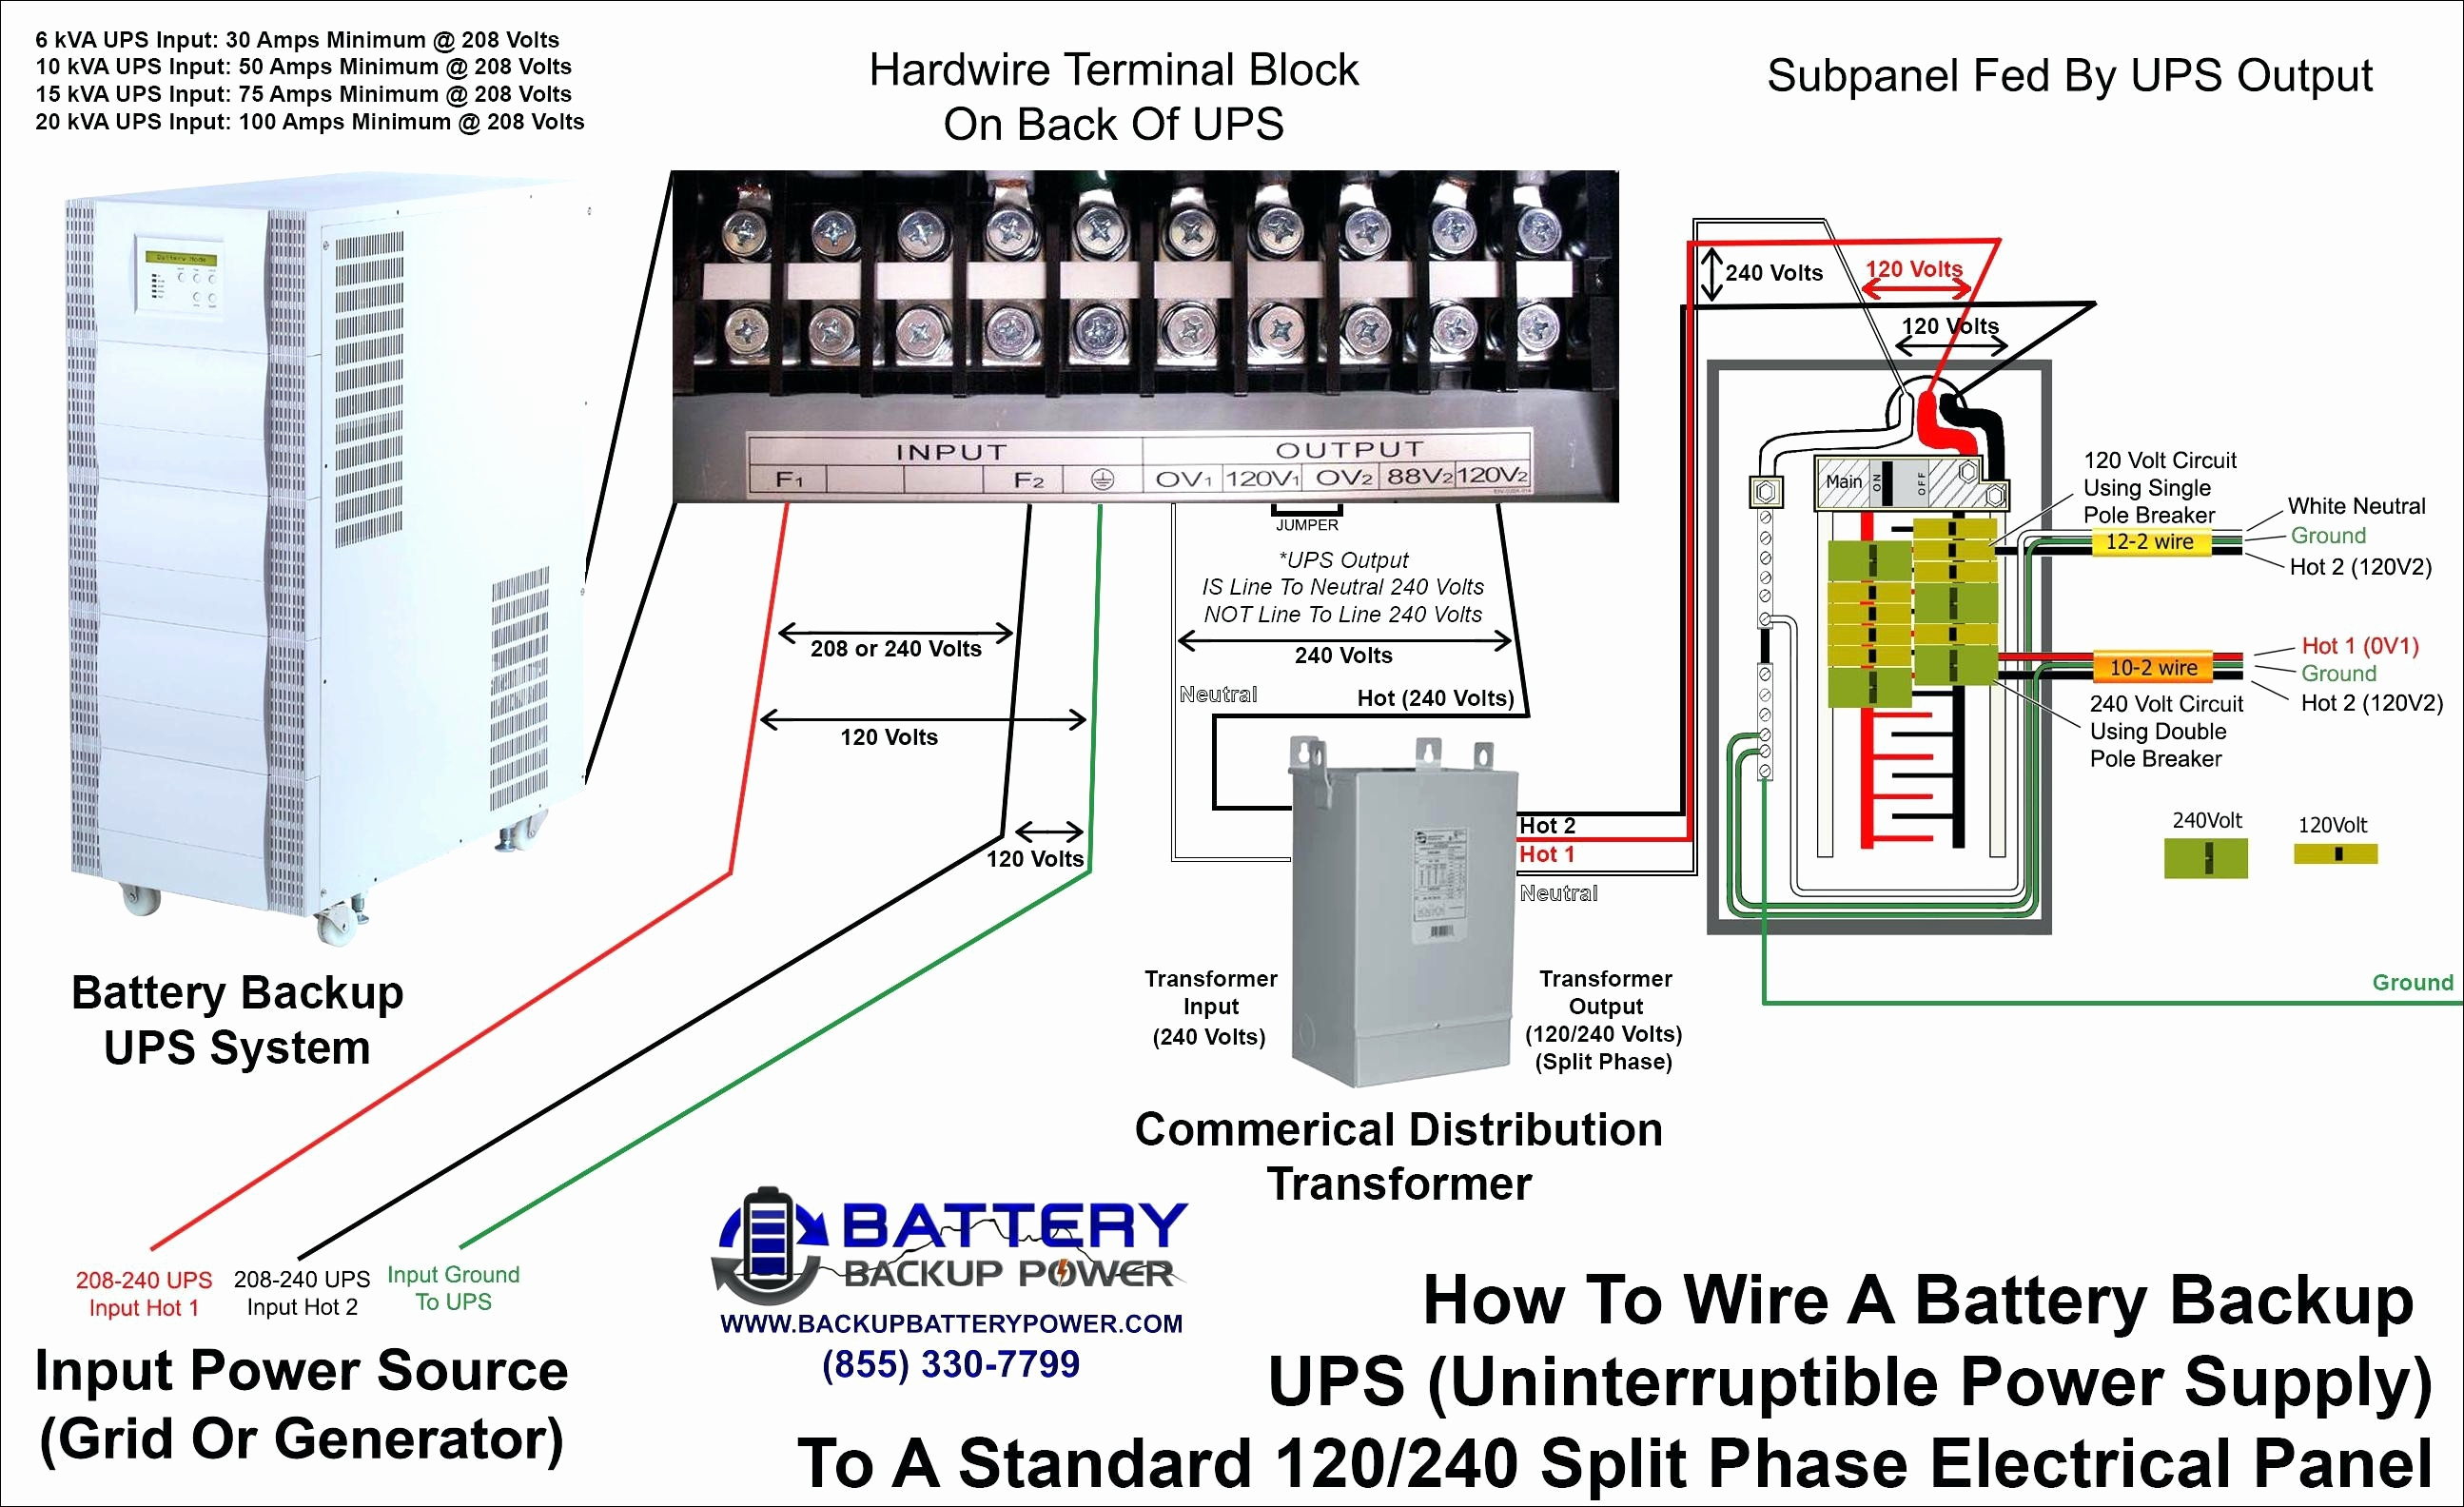 30 Amp To 50 Amp Adapter Wiring Diagram – Simple Wiring Diagram - 30 Amp Rv Wiring Diagram